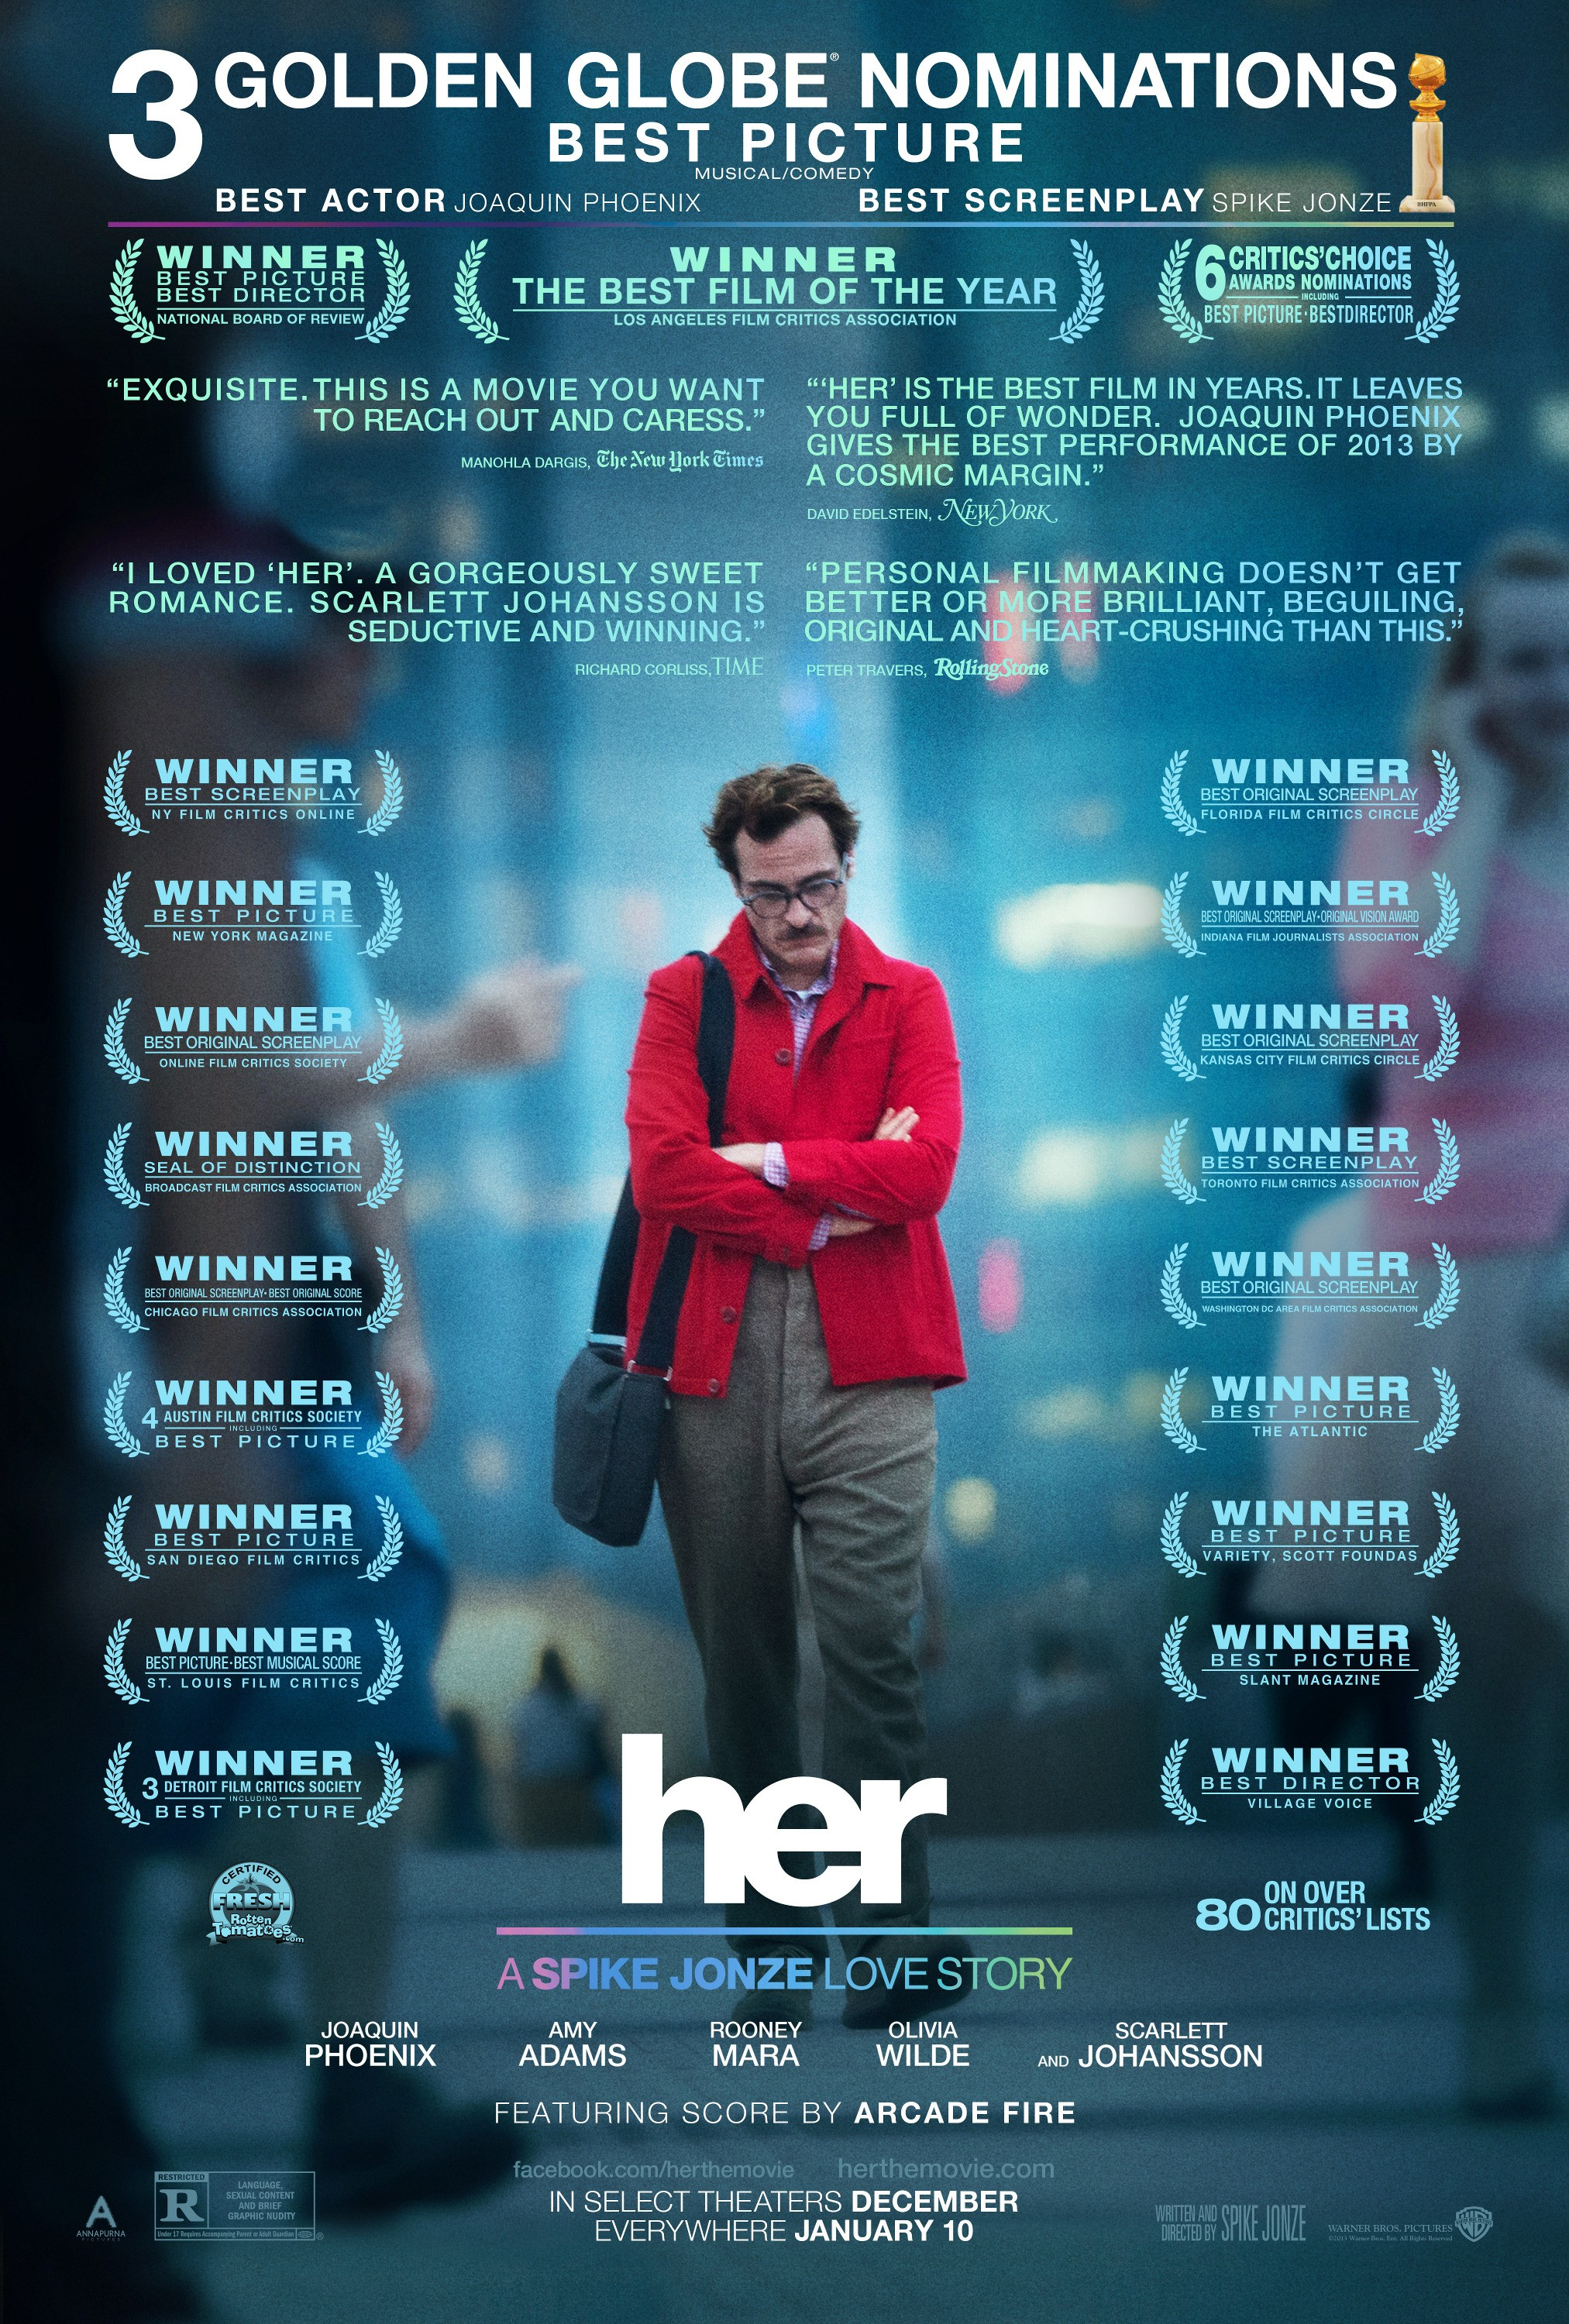 HER-Official Poster Banner PROMO POSTER XXLG-26DEZEMBRO2013